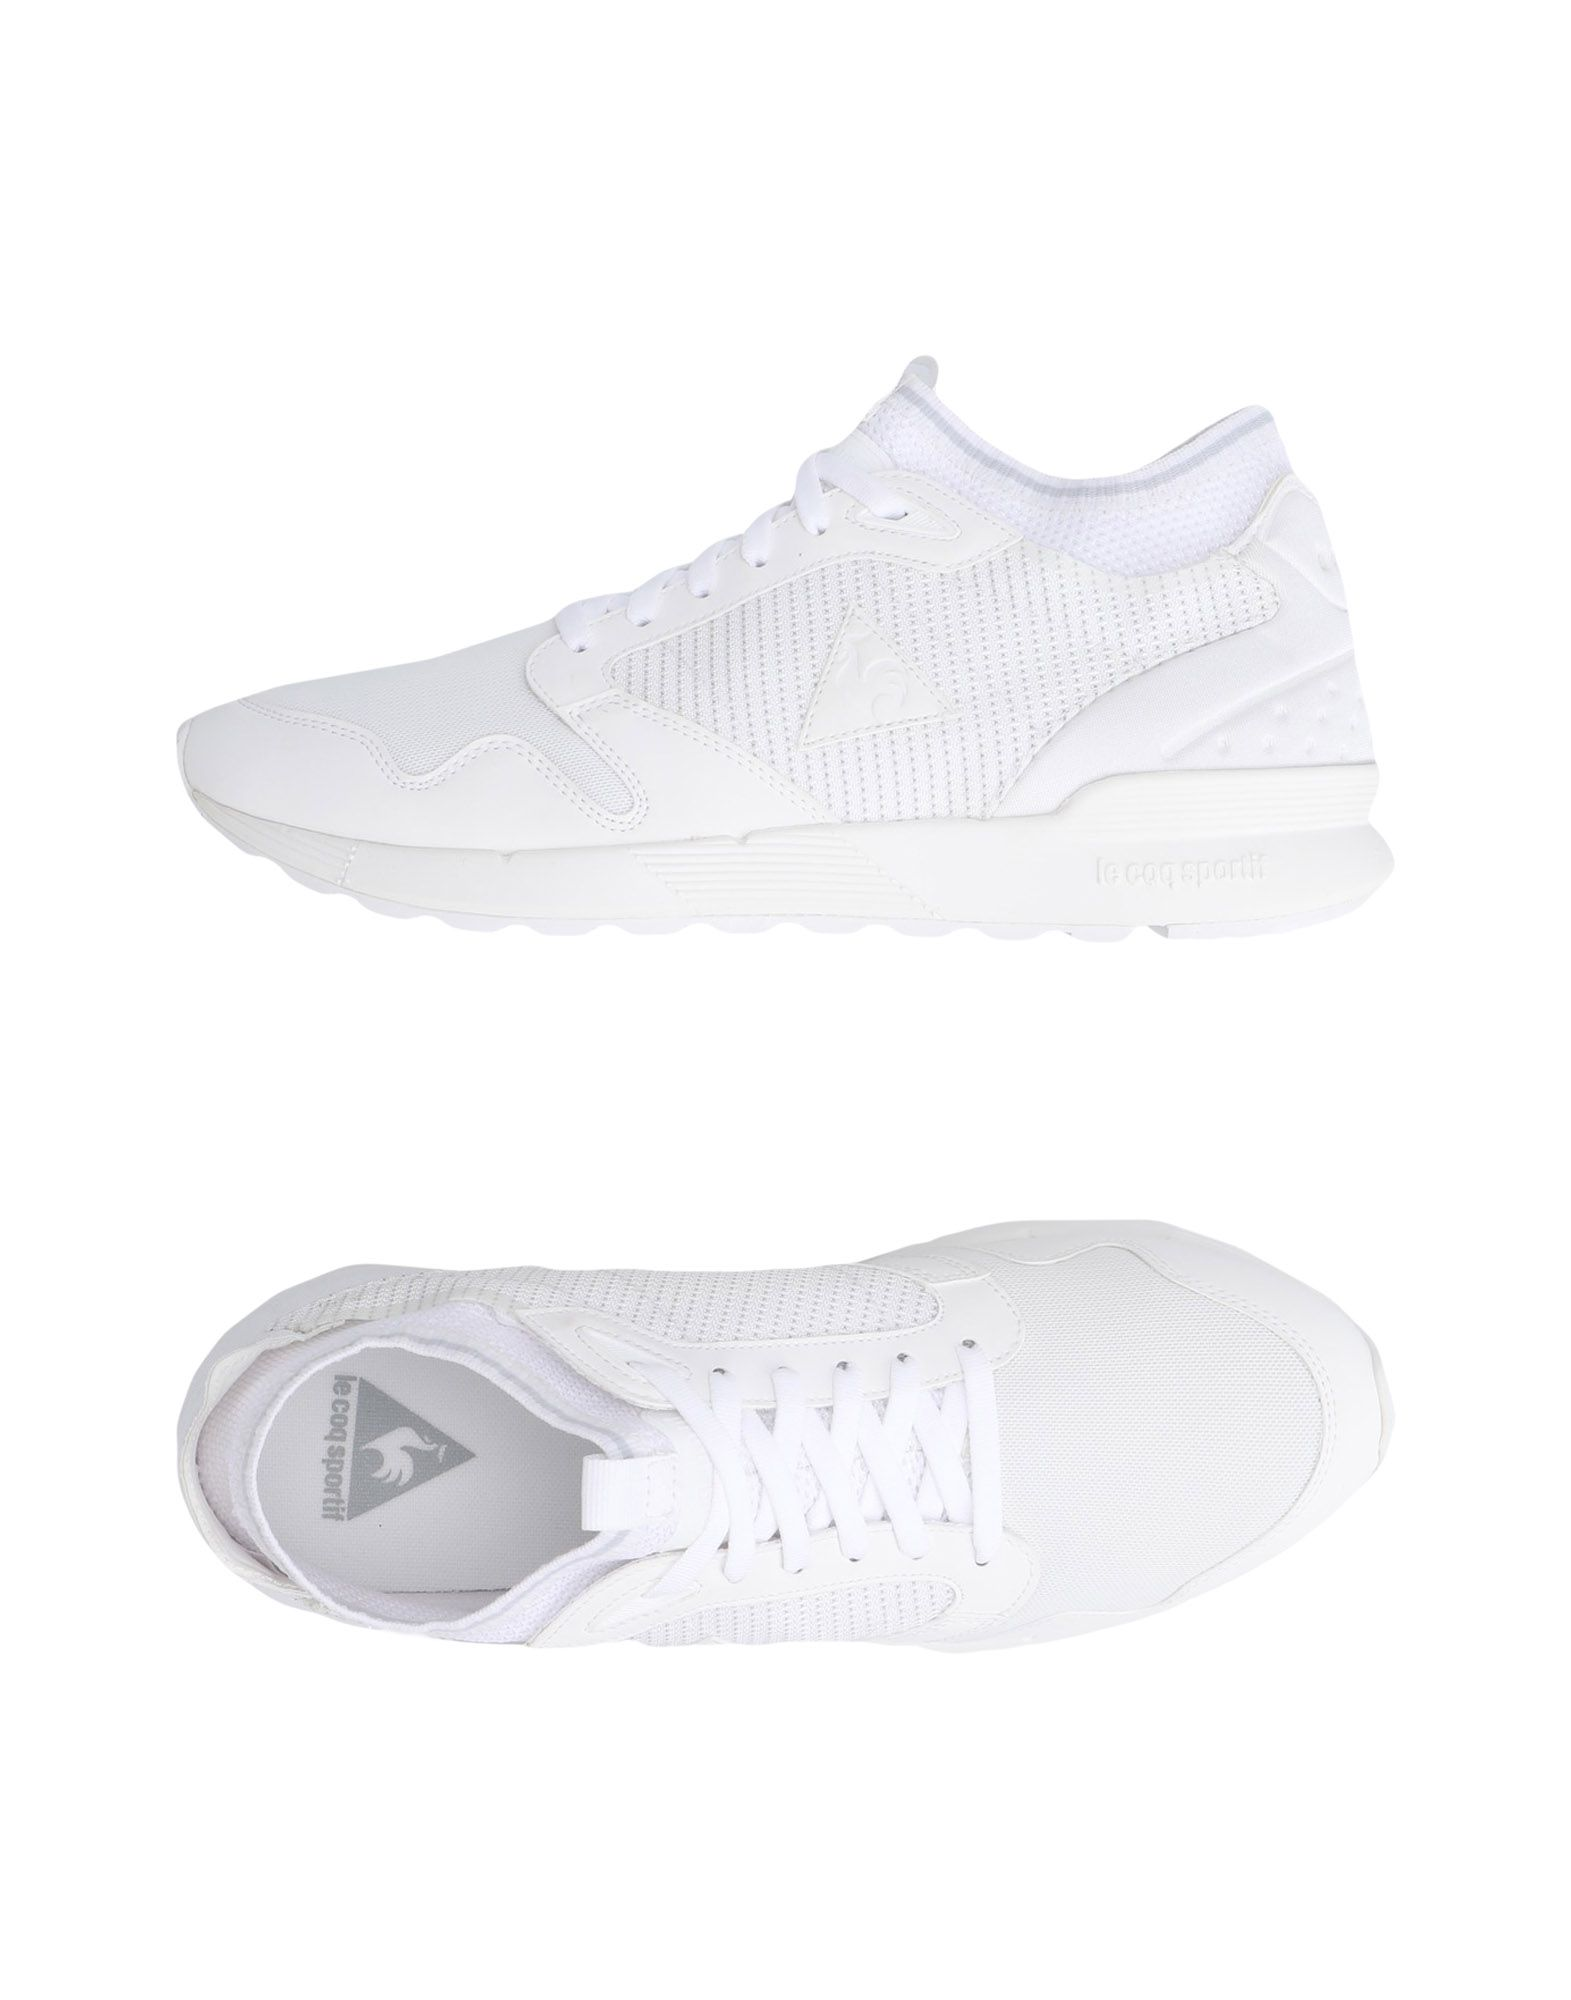 Le Coq Sportif Omicron Triple Reflective - Sneakers Sportif - Men Le Coq Sportif Sneakers Sneakers online on  United Kingdom - 11340662PO 74e655